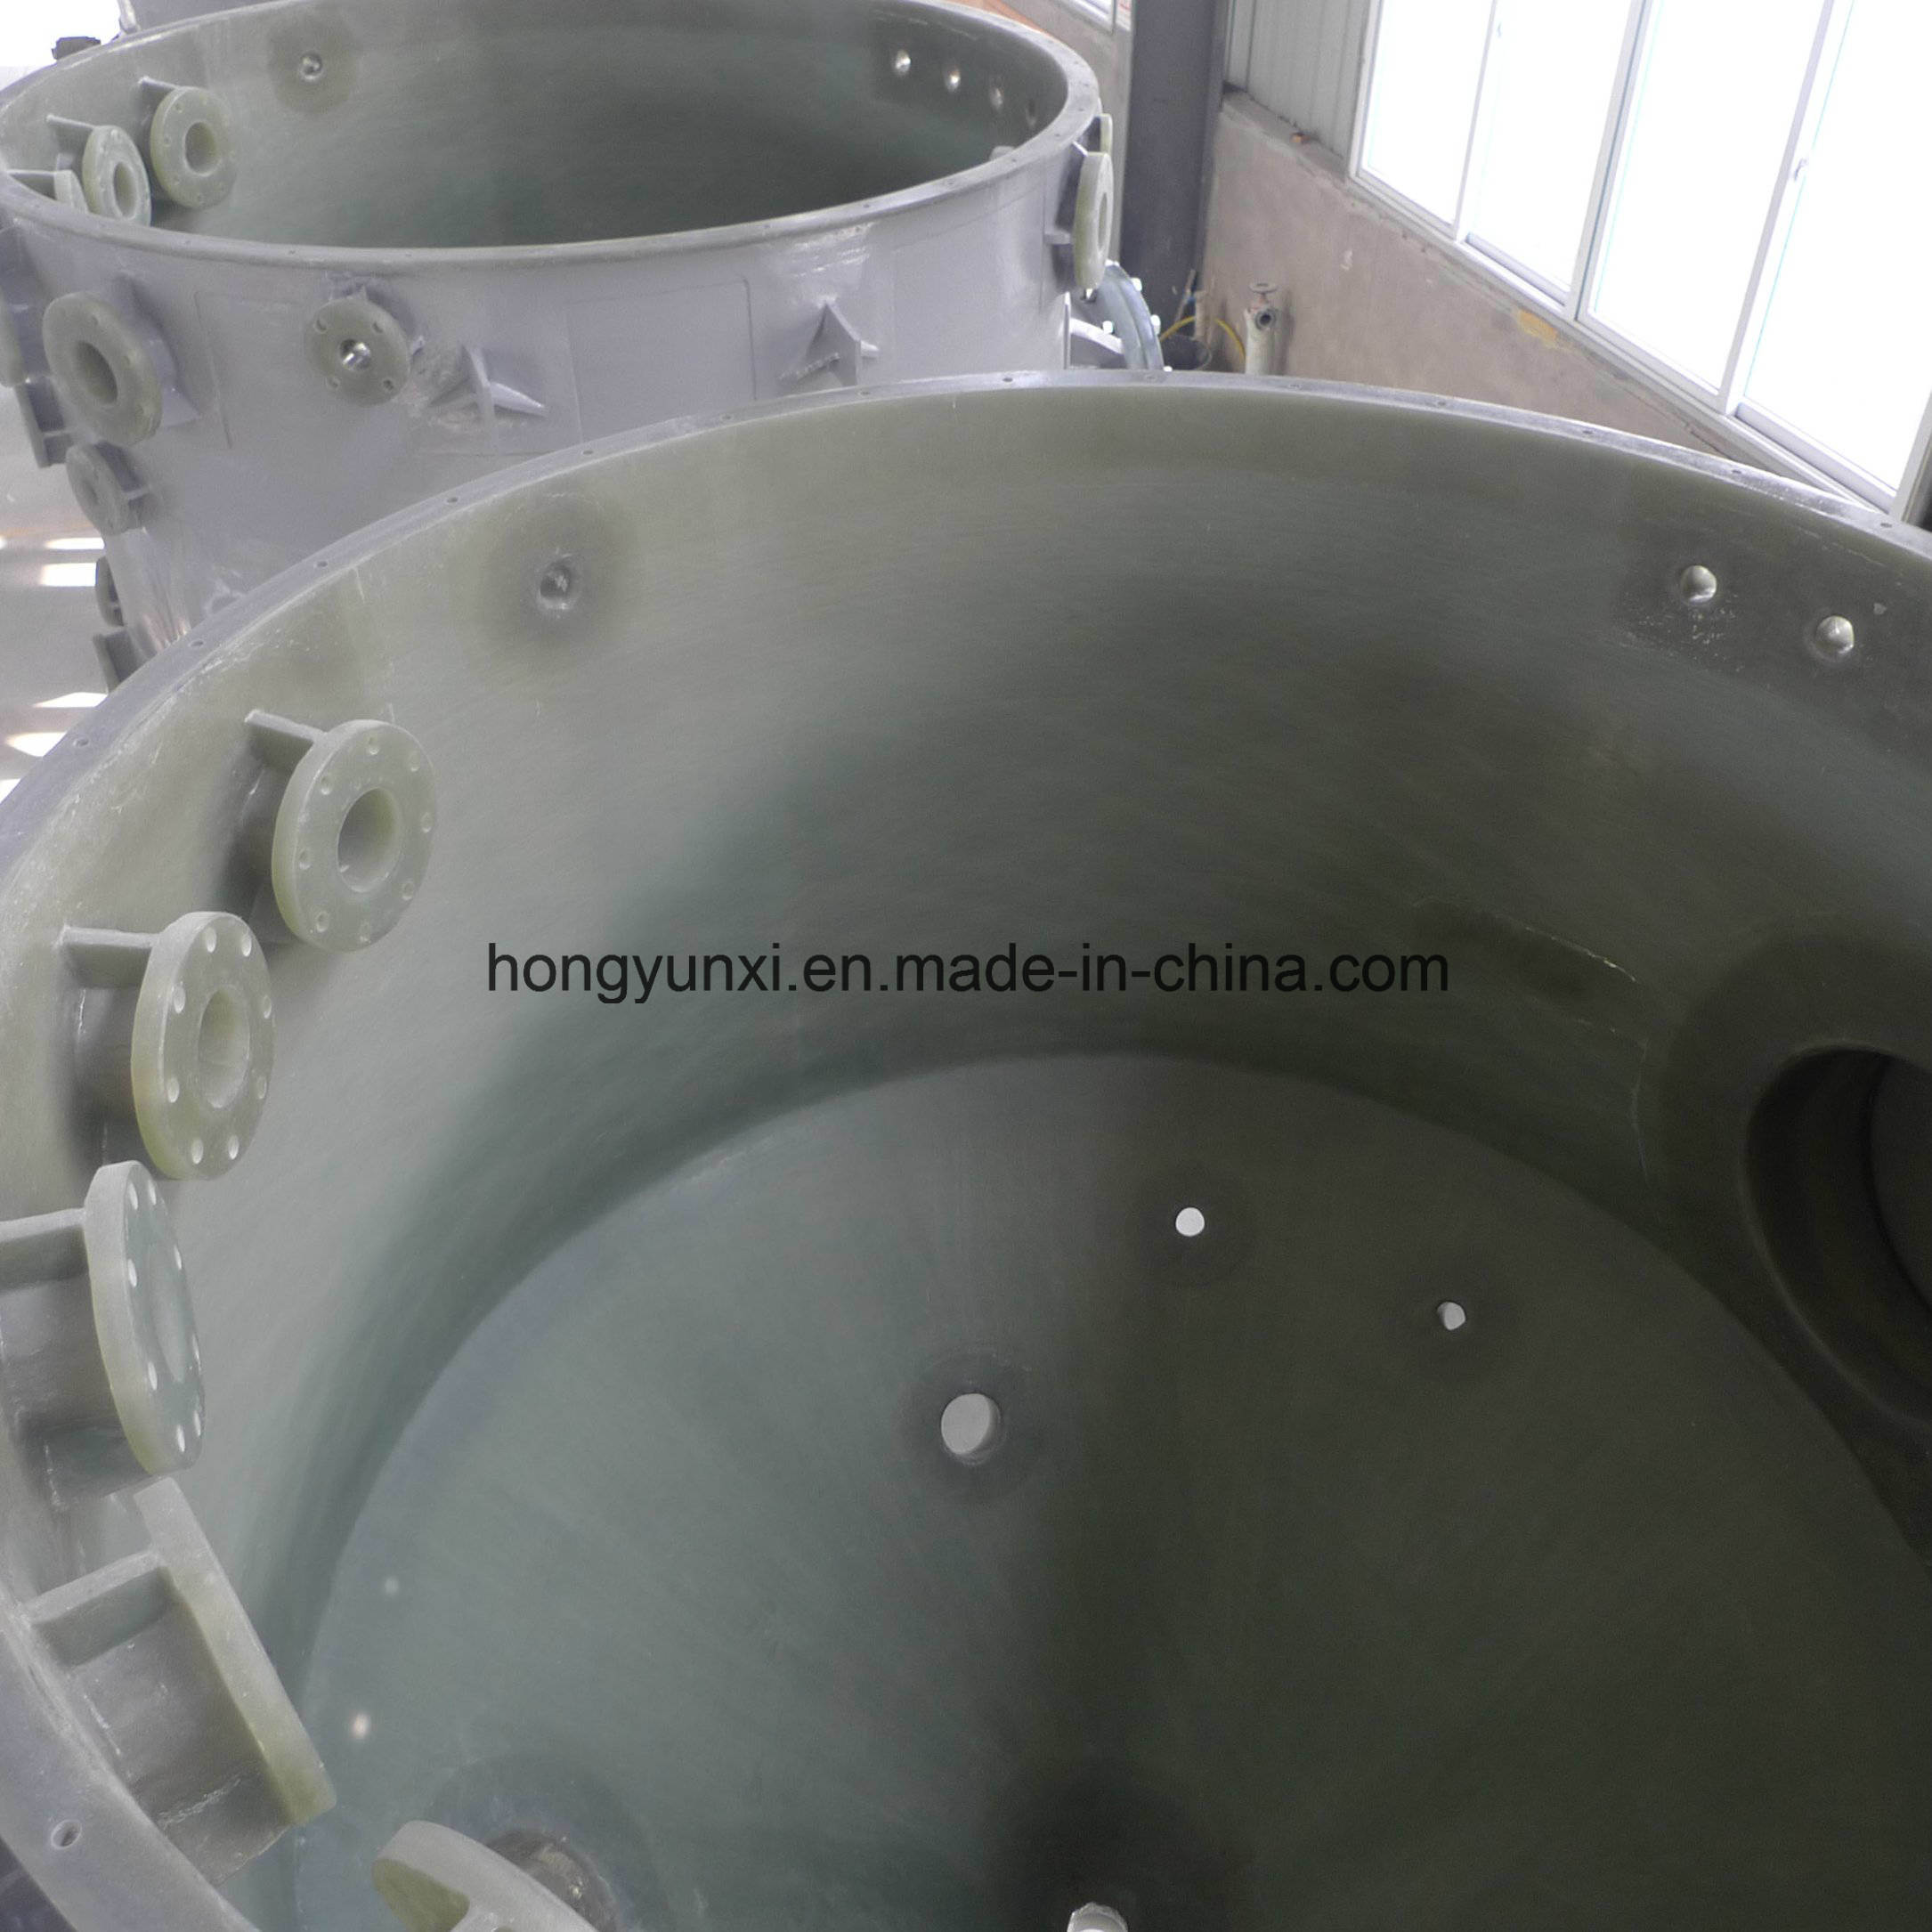 China Fiberglass Desalination Products for Seawater or Saltwater